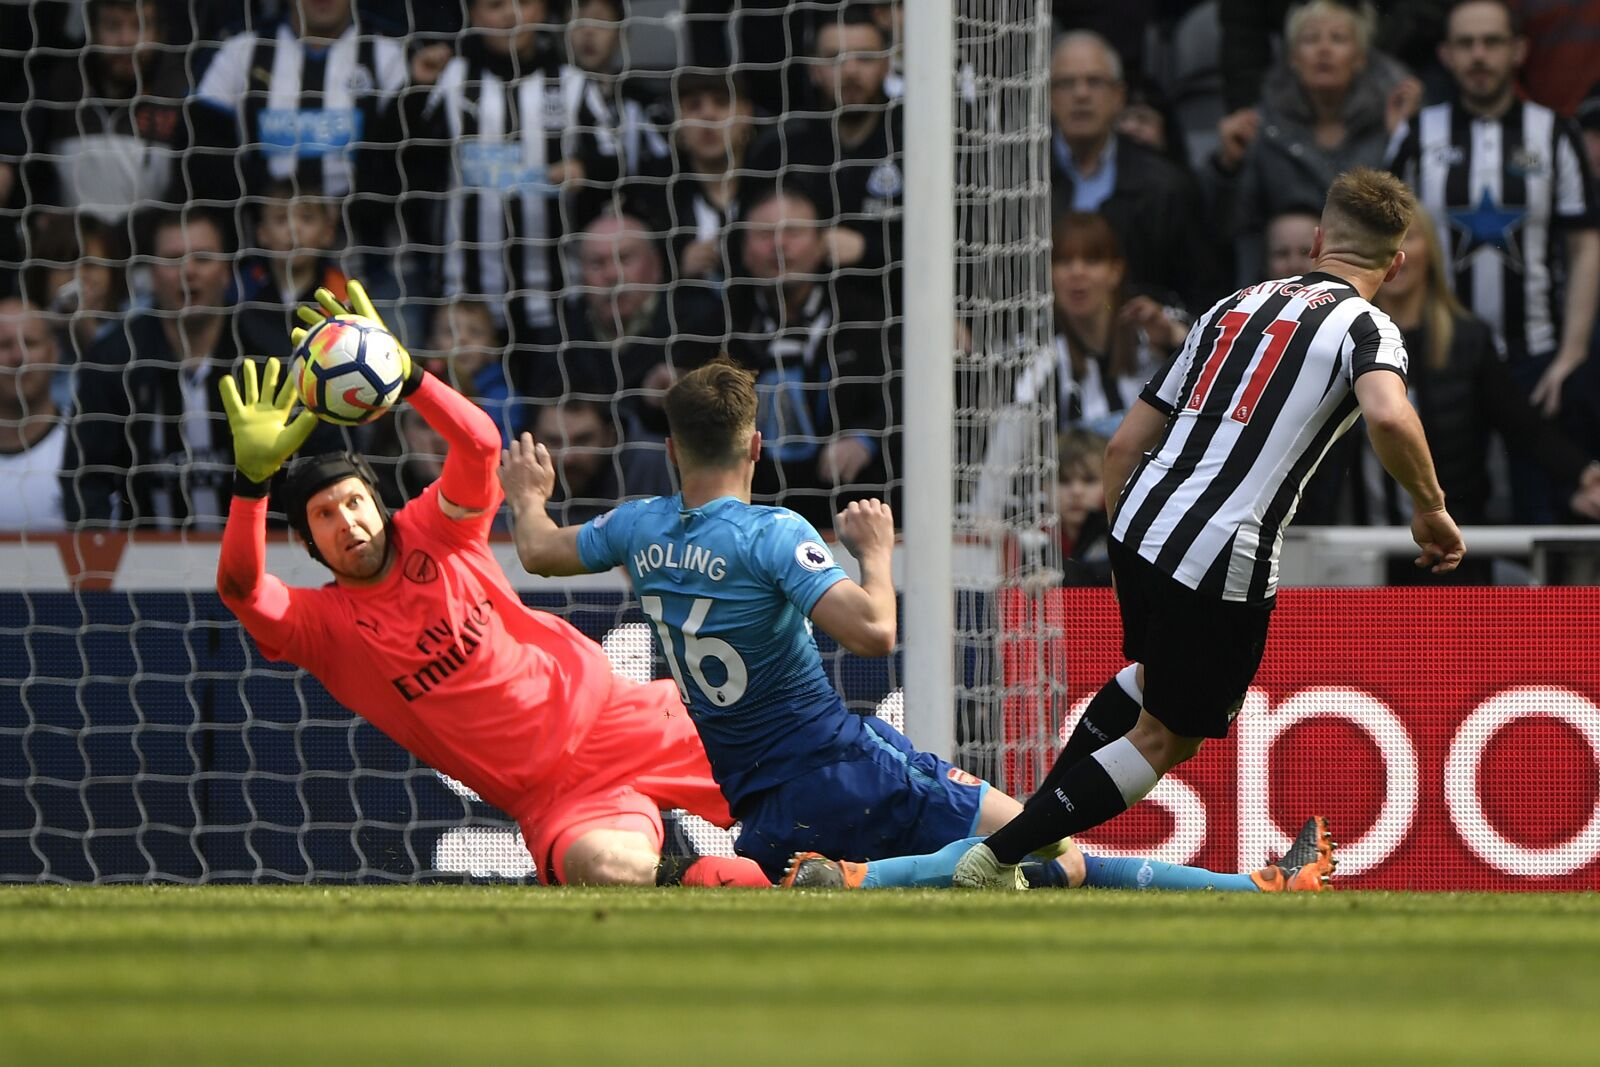 Arsenal Vs Newcastle United  5 things we learned - Reaching the cliff 8e935aa248c6